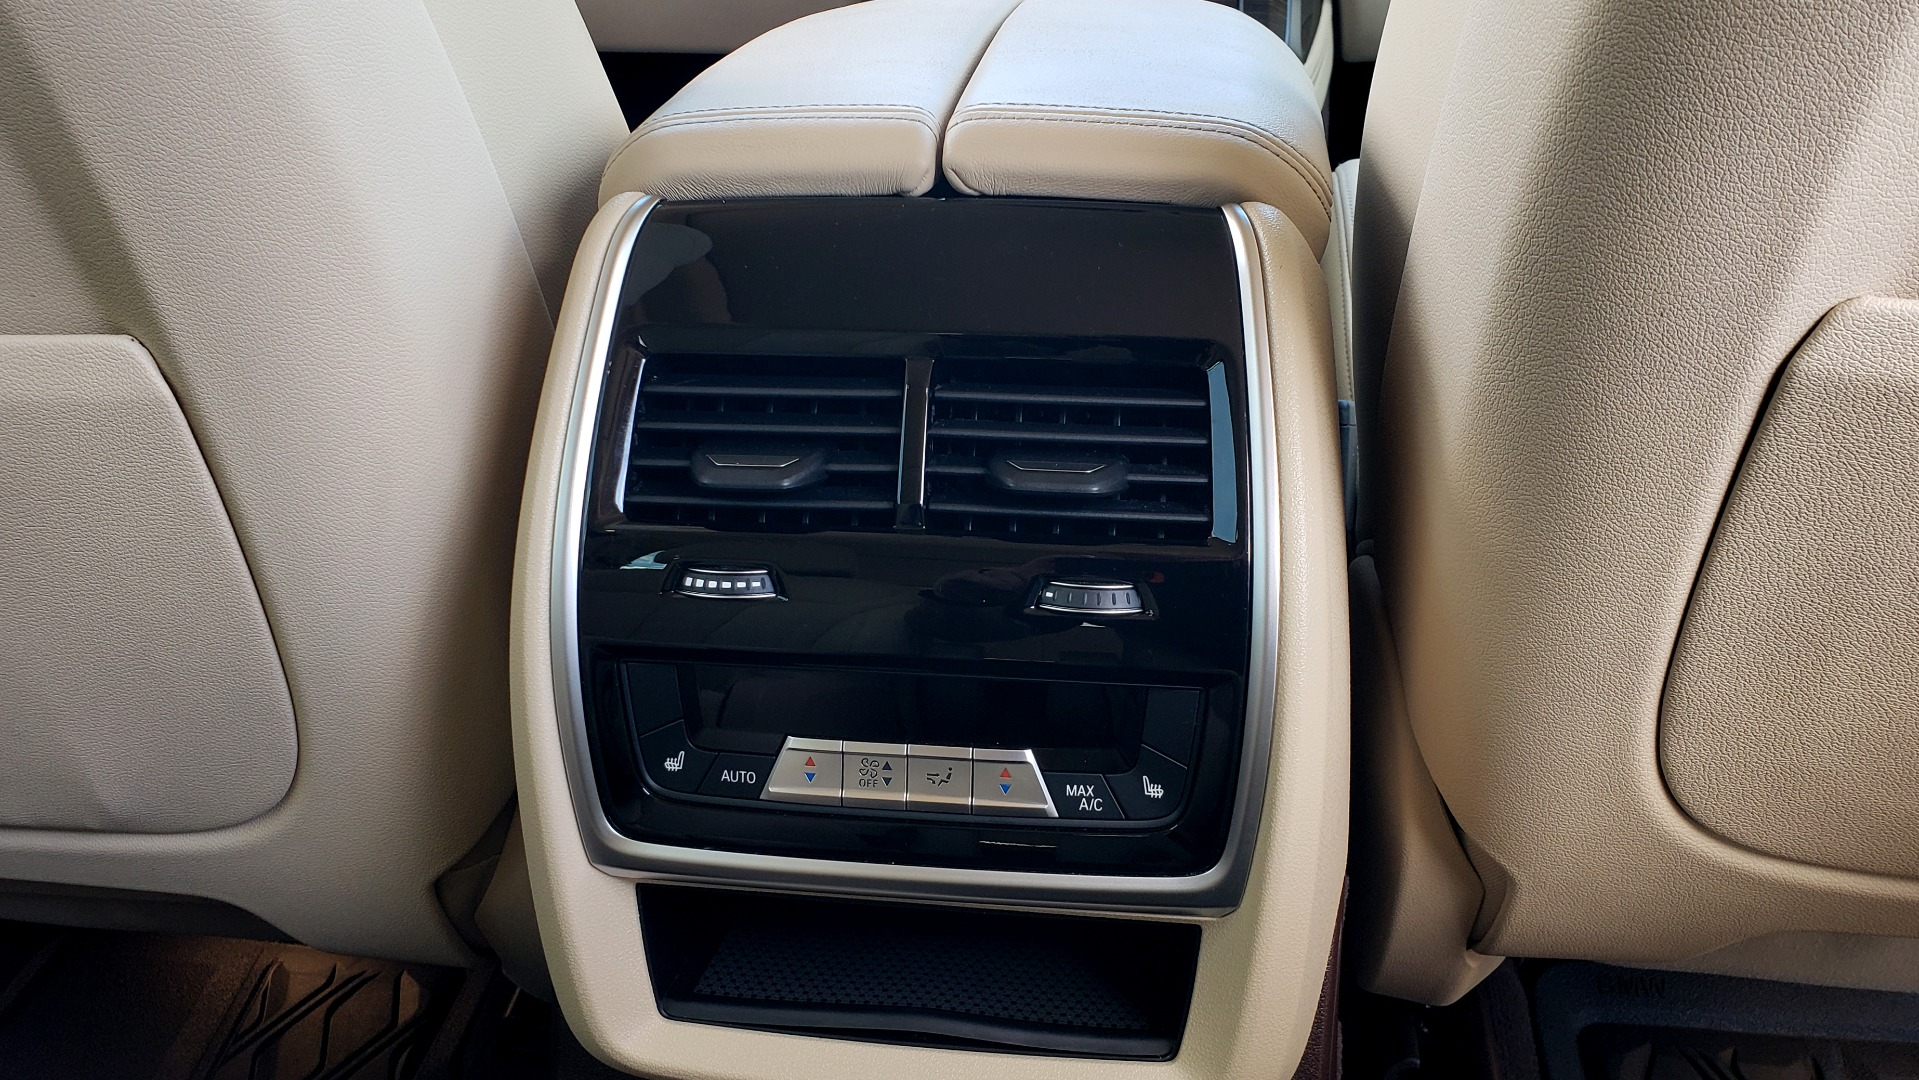 Used 2019 BMW X7 XDRIVE40I PREMIUM / LUXURY / COLD WEATHER / PARK ASST / PANORAMIC SKY / TOW for sale $75,999 at Formula Imports in Charlotte NC 28227 94